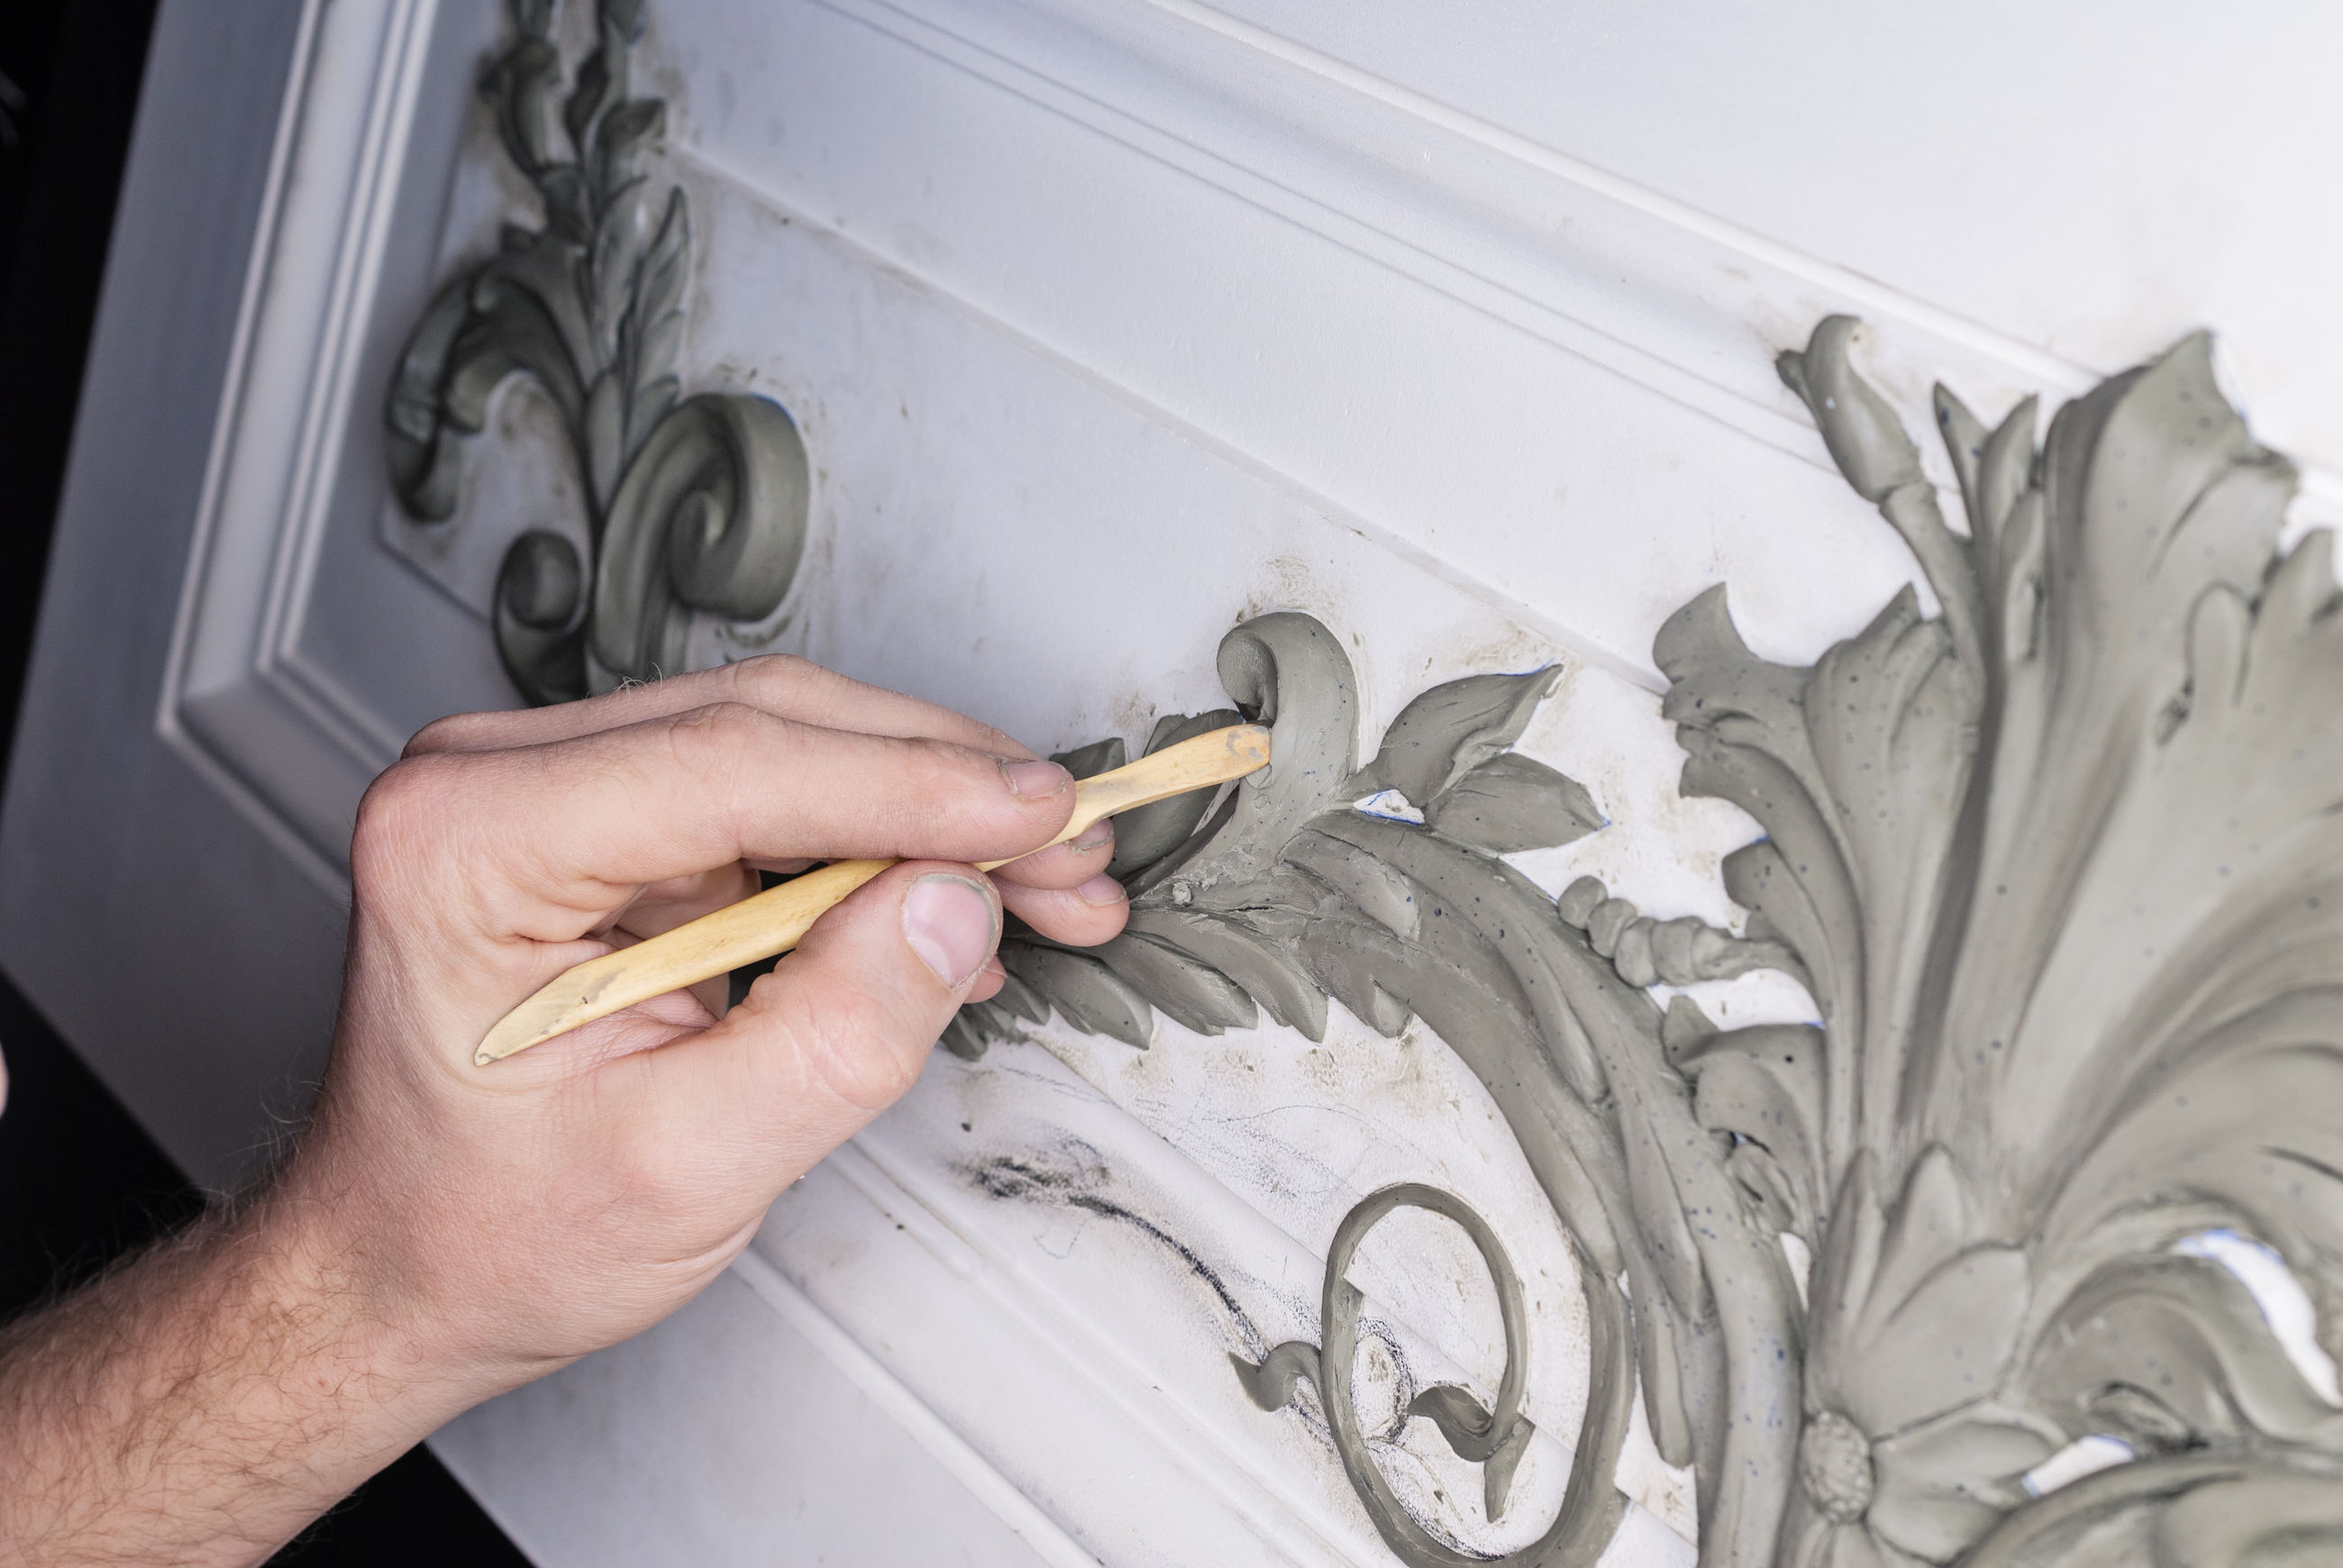 Cropped image of hand carving on wall